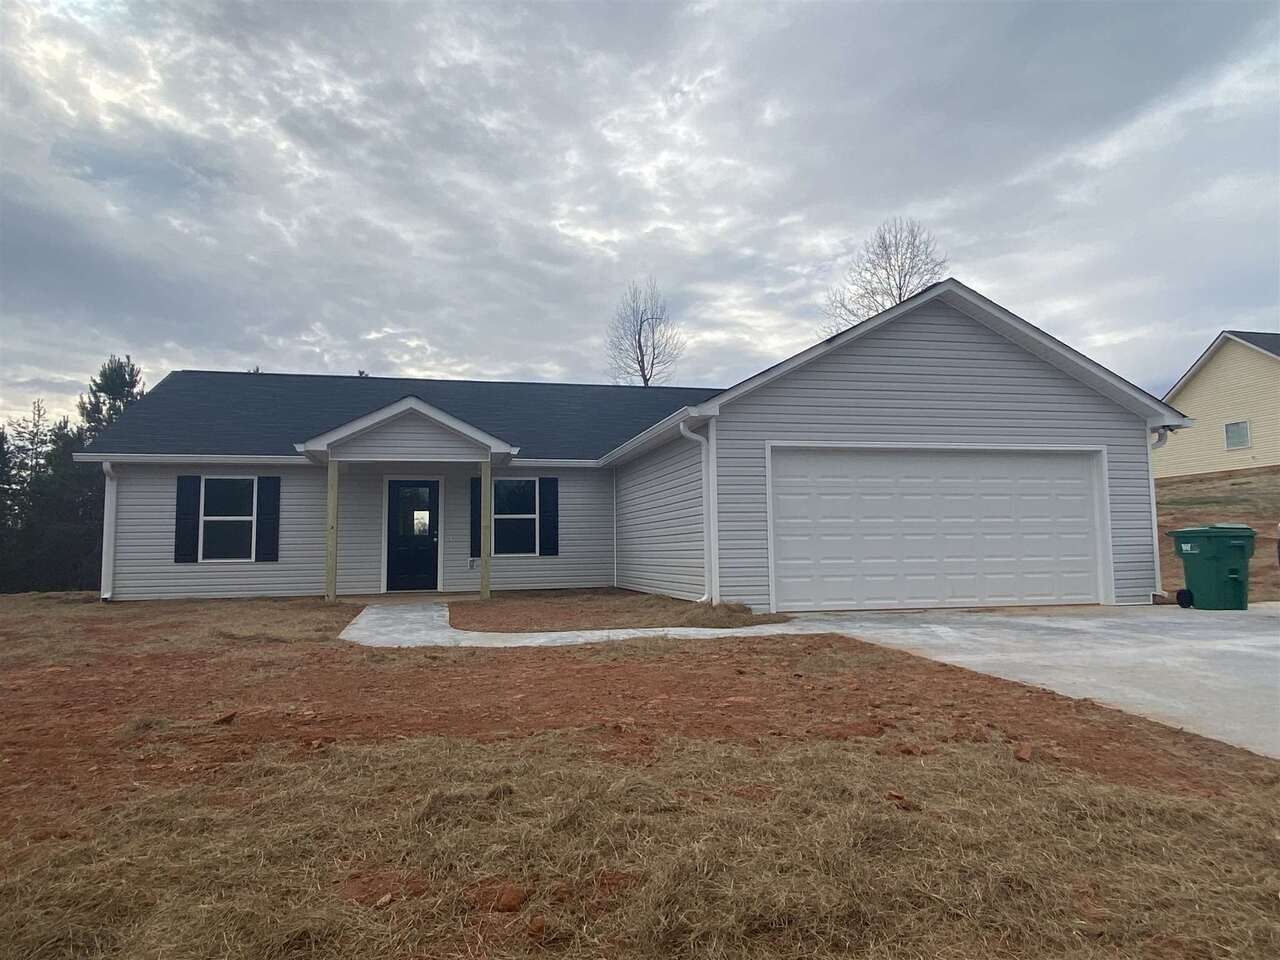 195 Russell Woods Dr, Mount Airy, GA 30563 - MLS#: 8907560